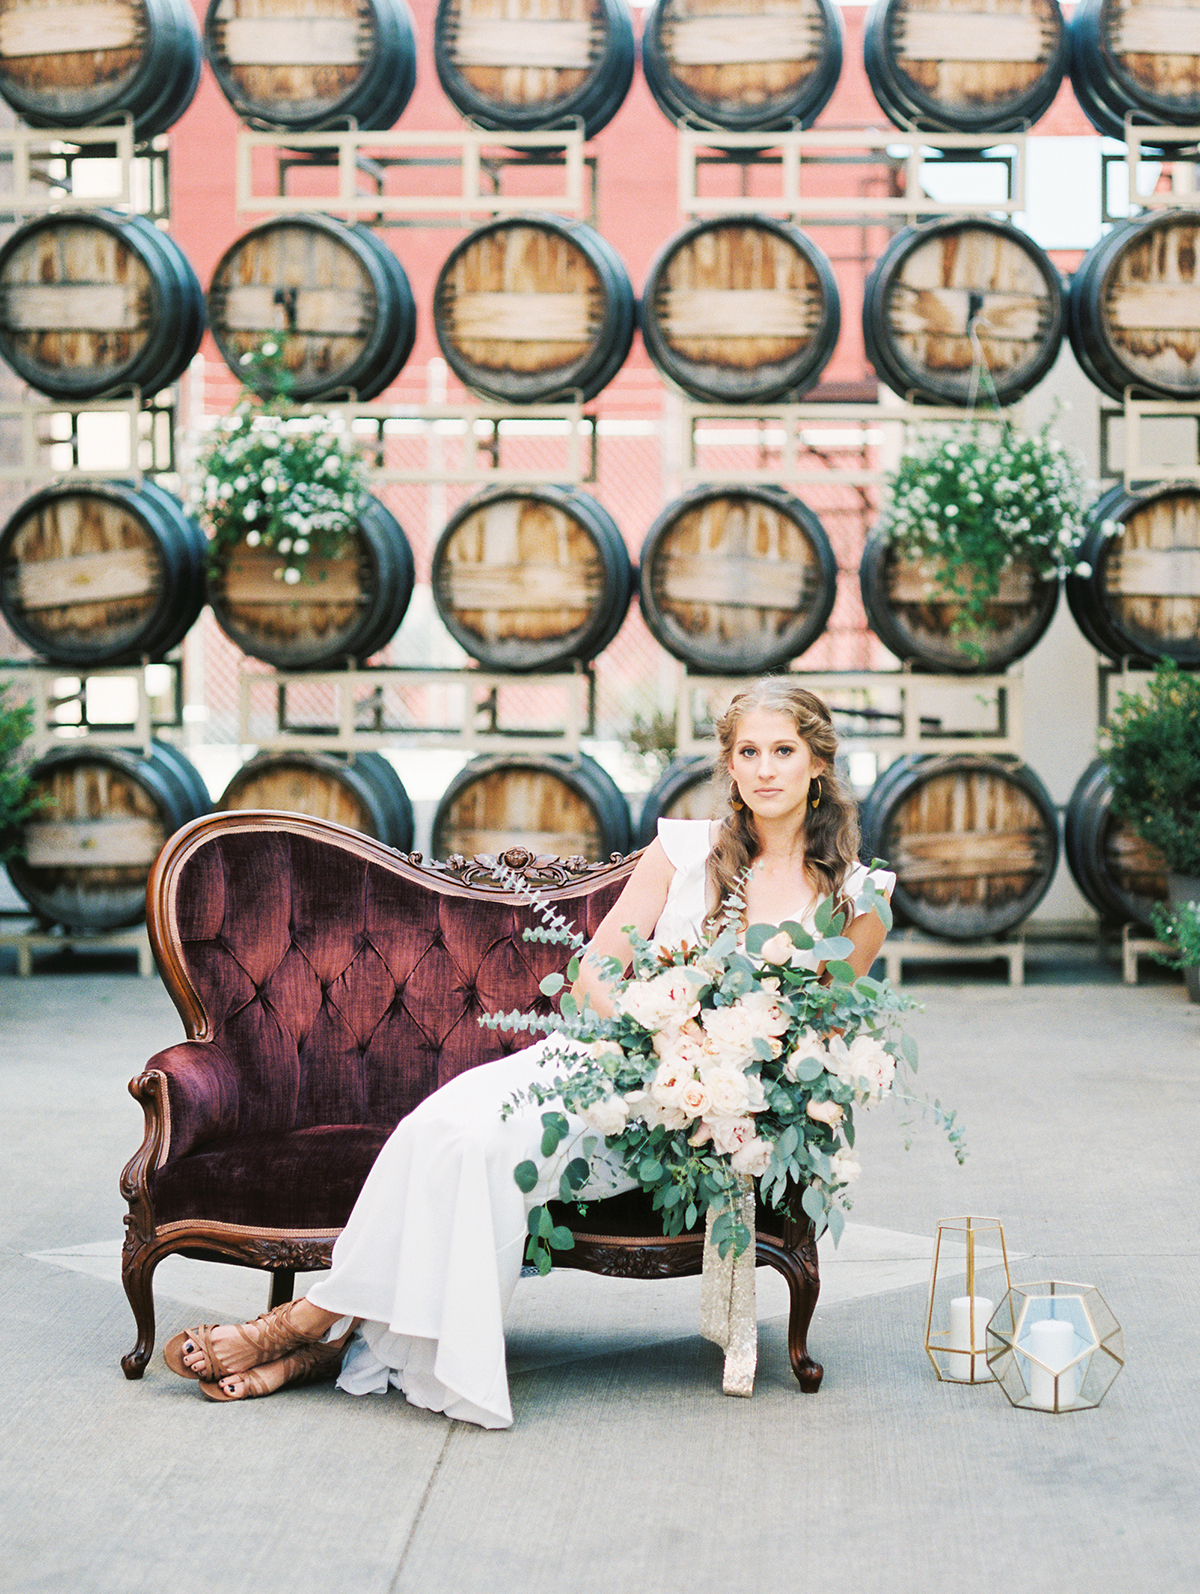 Winery Bridal Inspiration